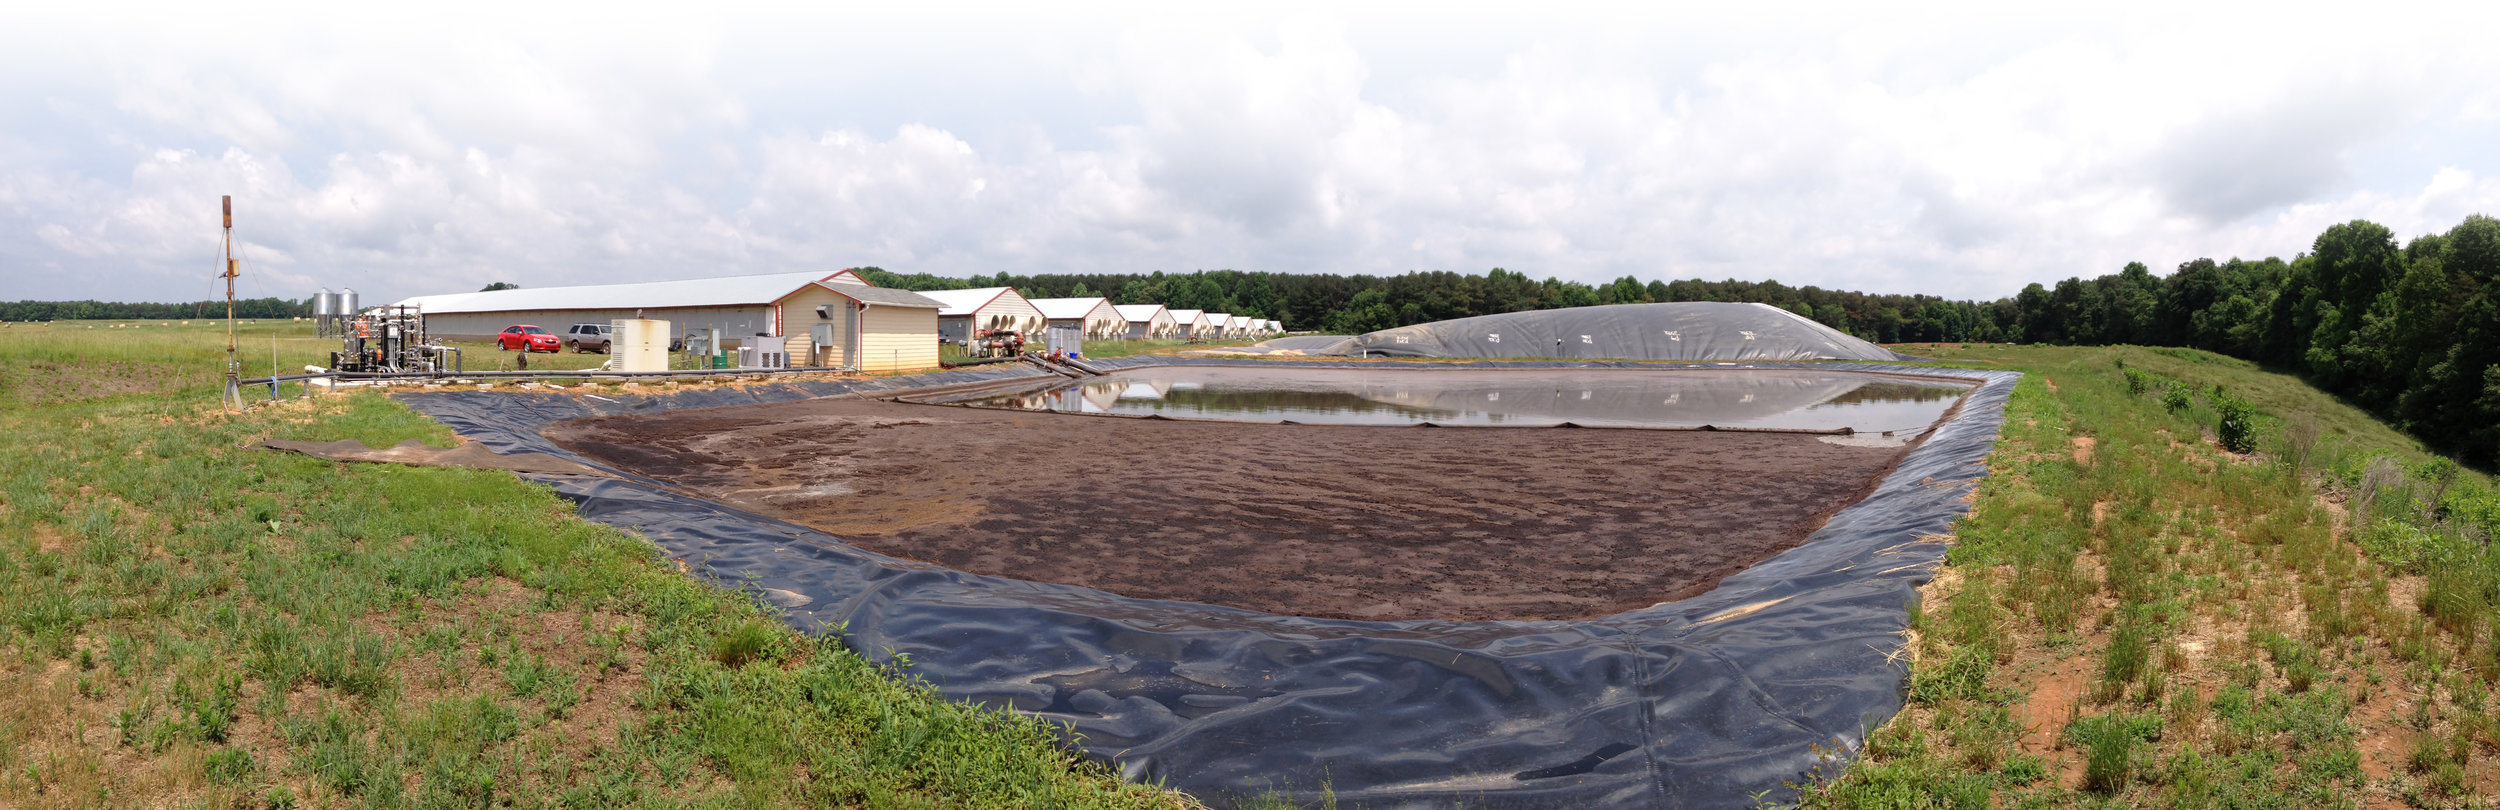 new digester left and lagoon on right.jpg